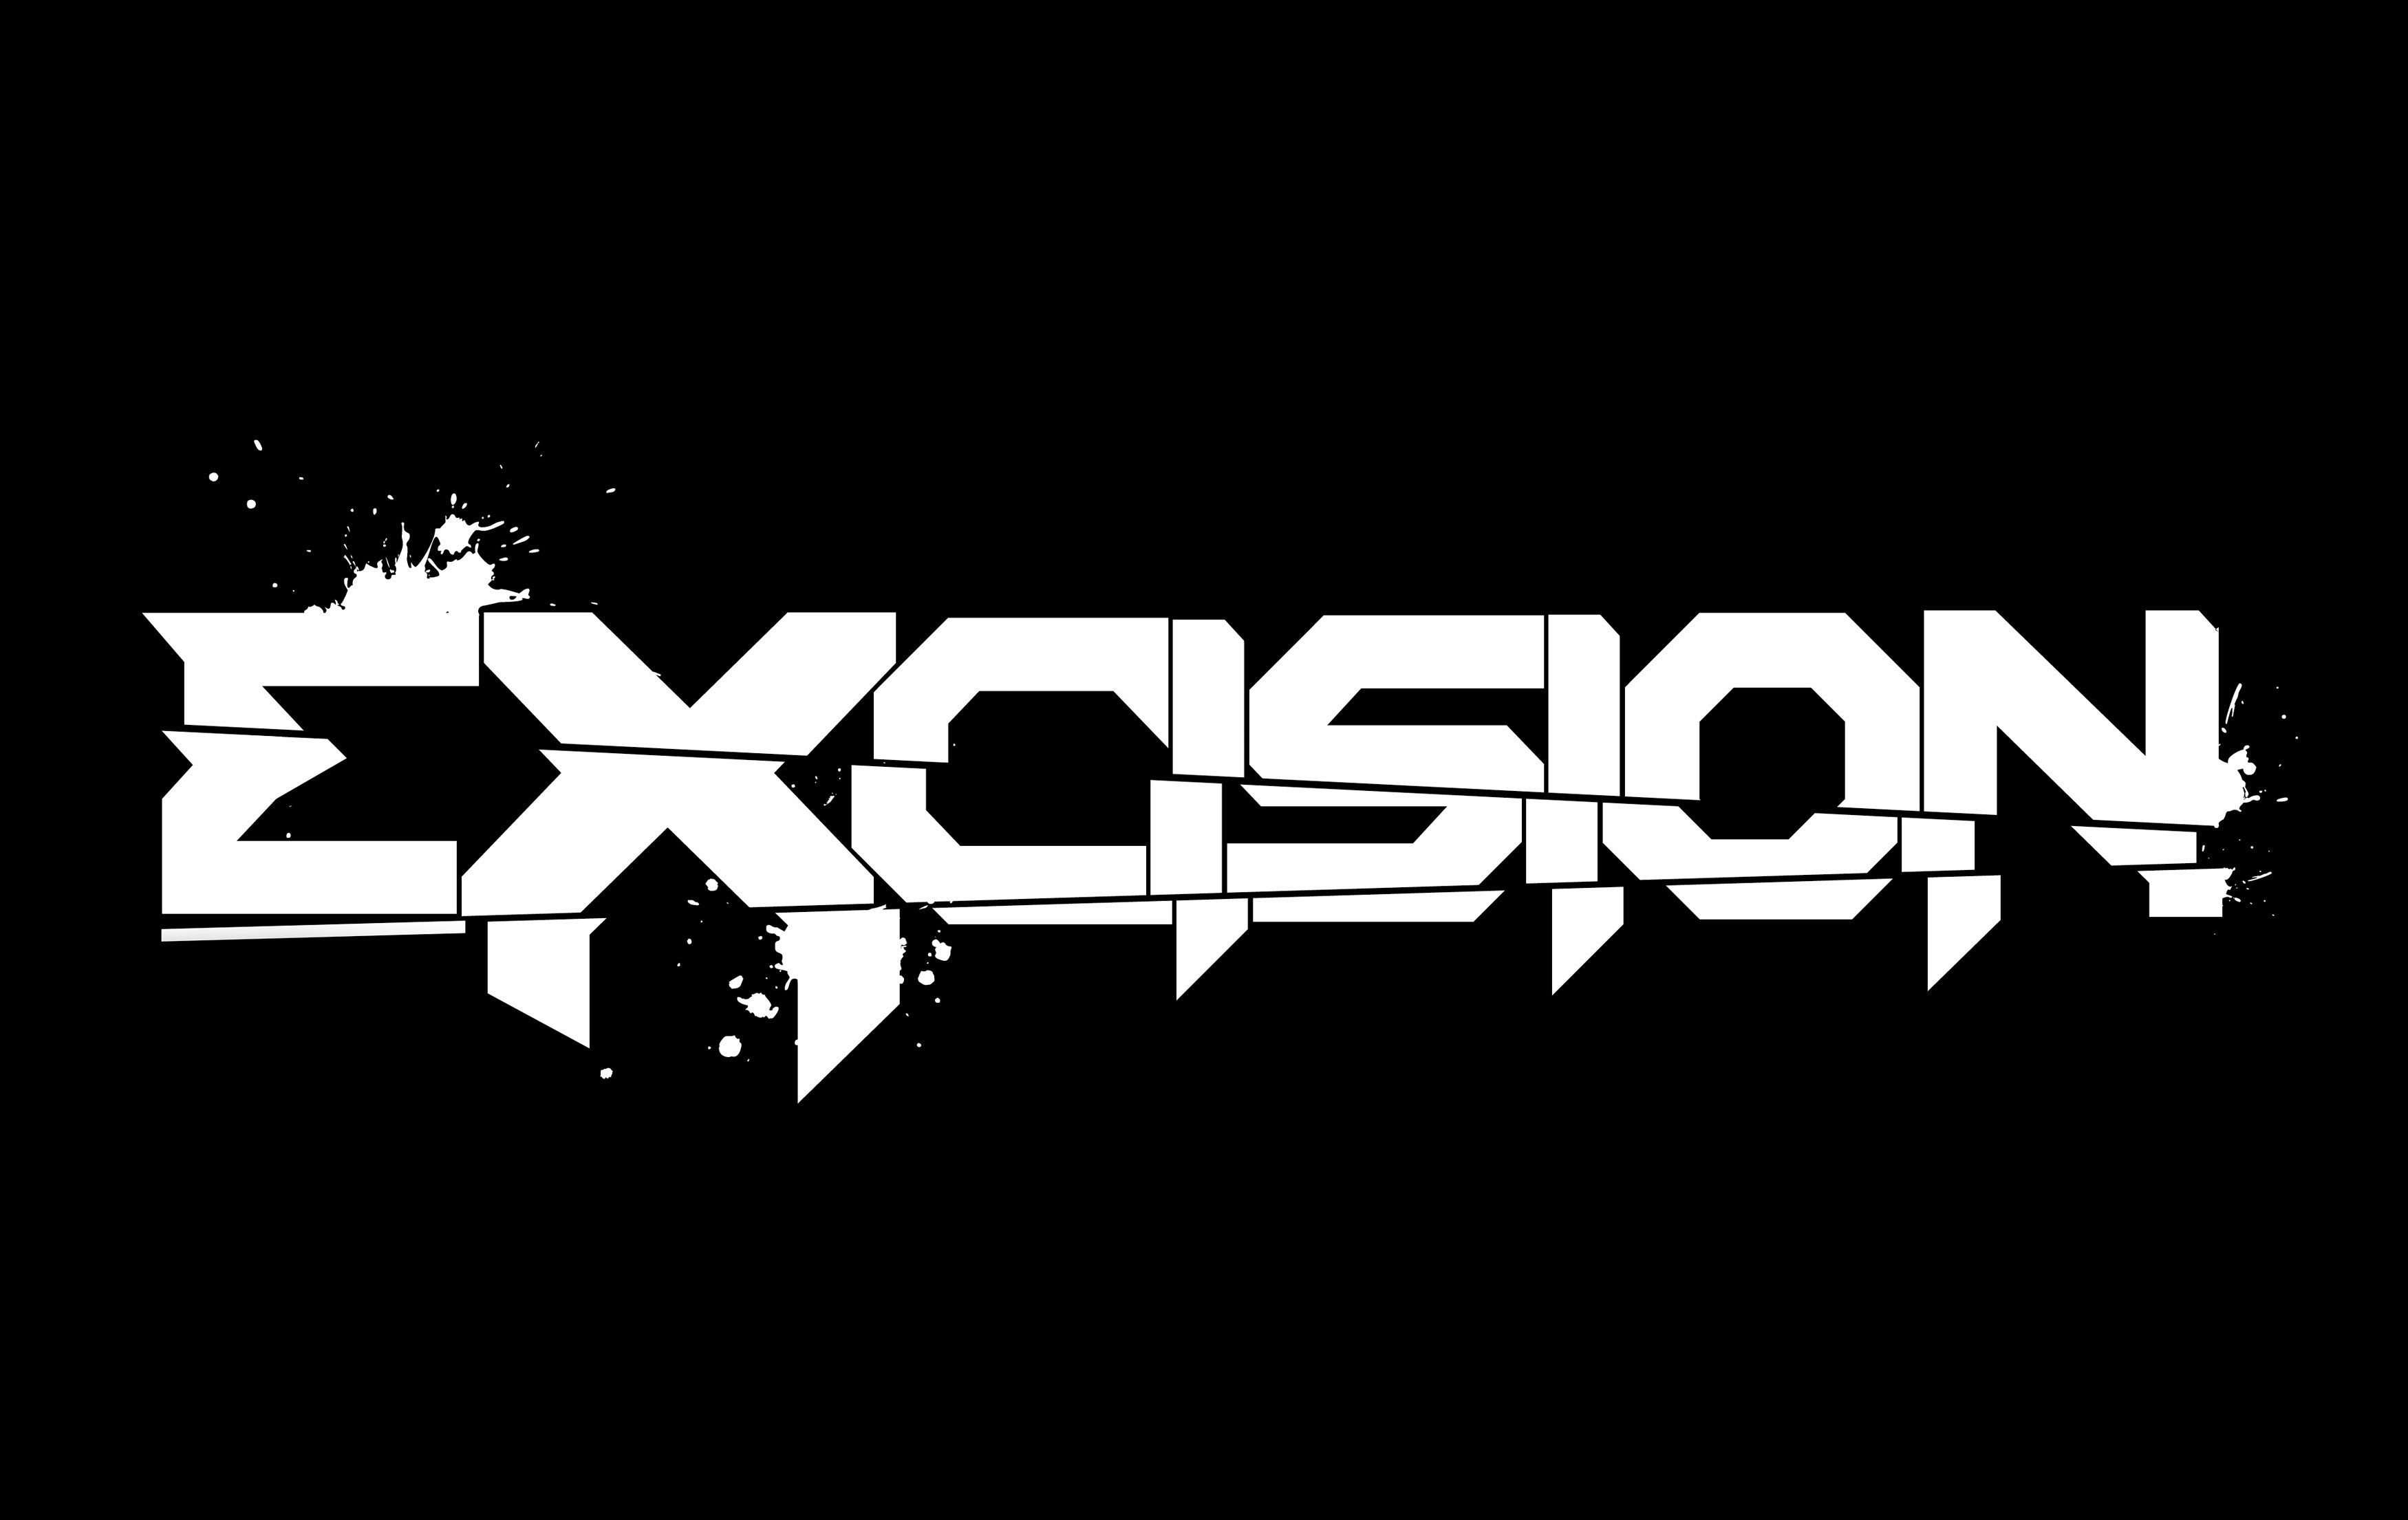 Danette bishop free screensaver wallpapers for excision 3500x2210 px